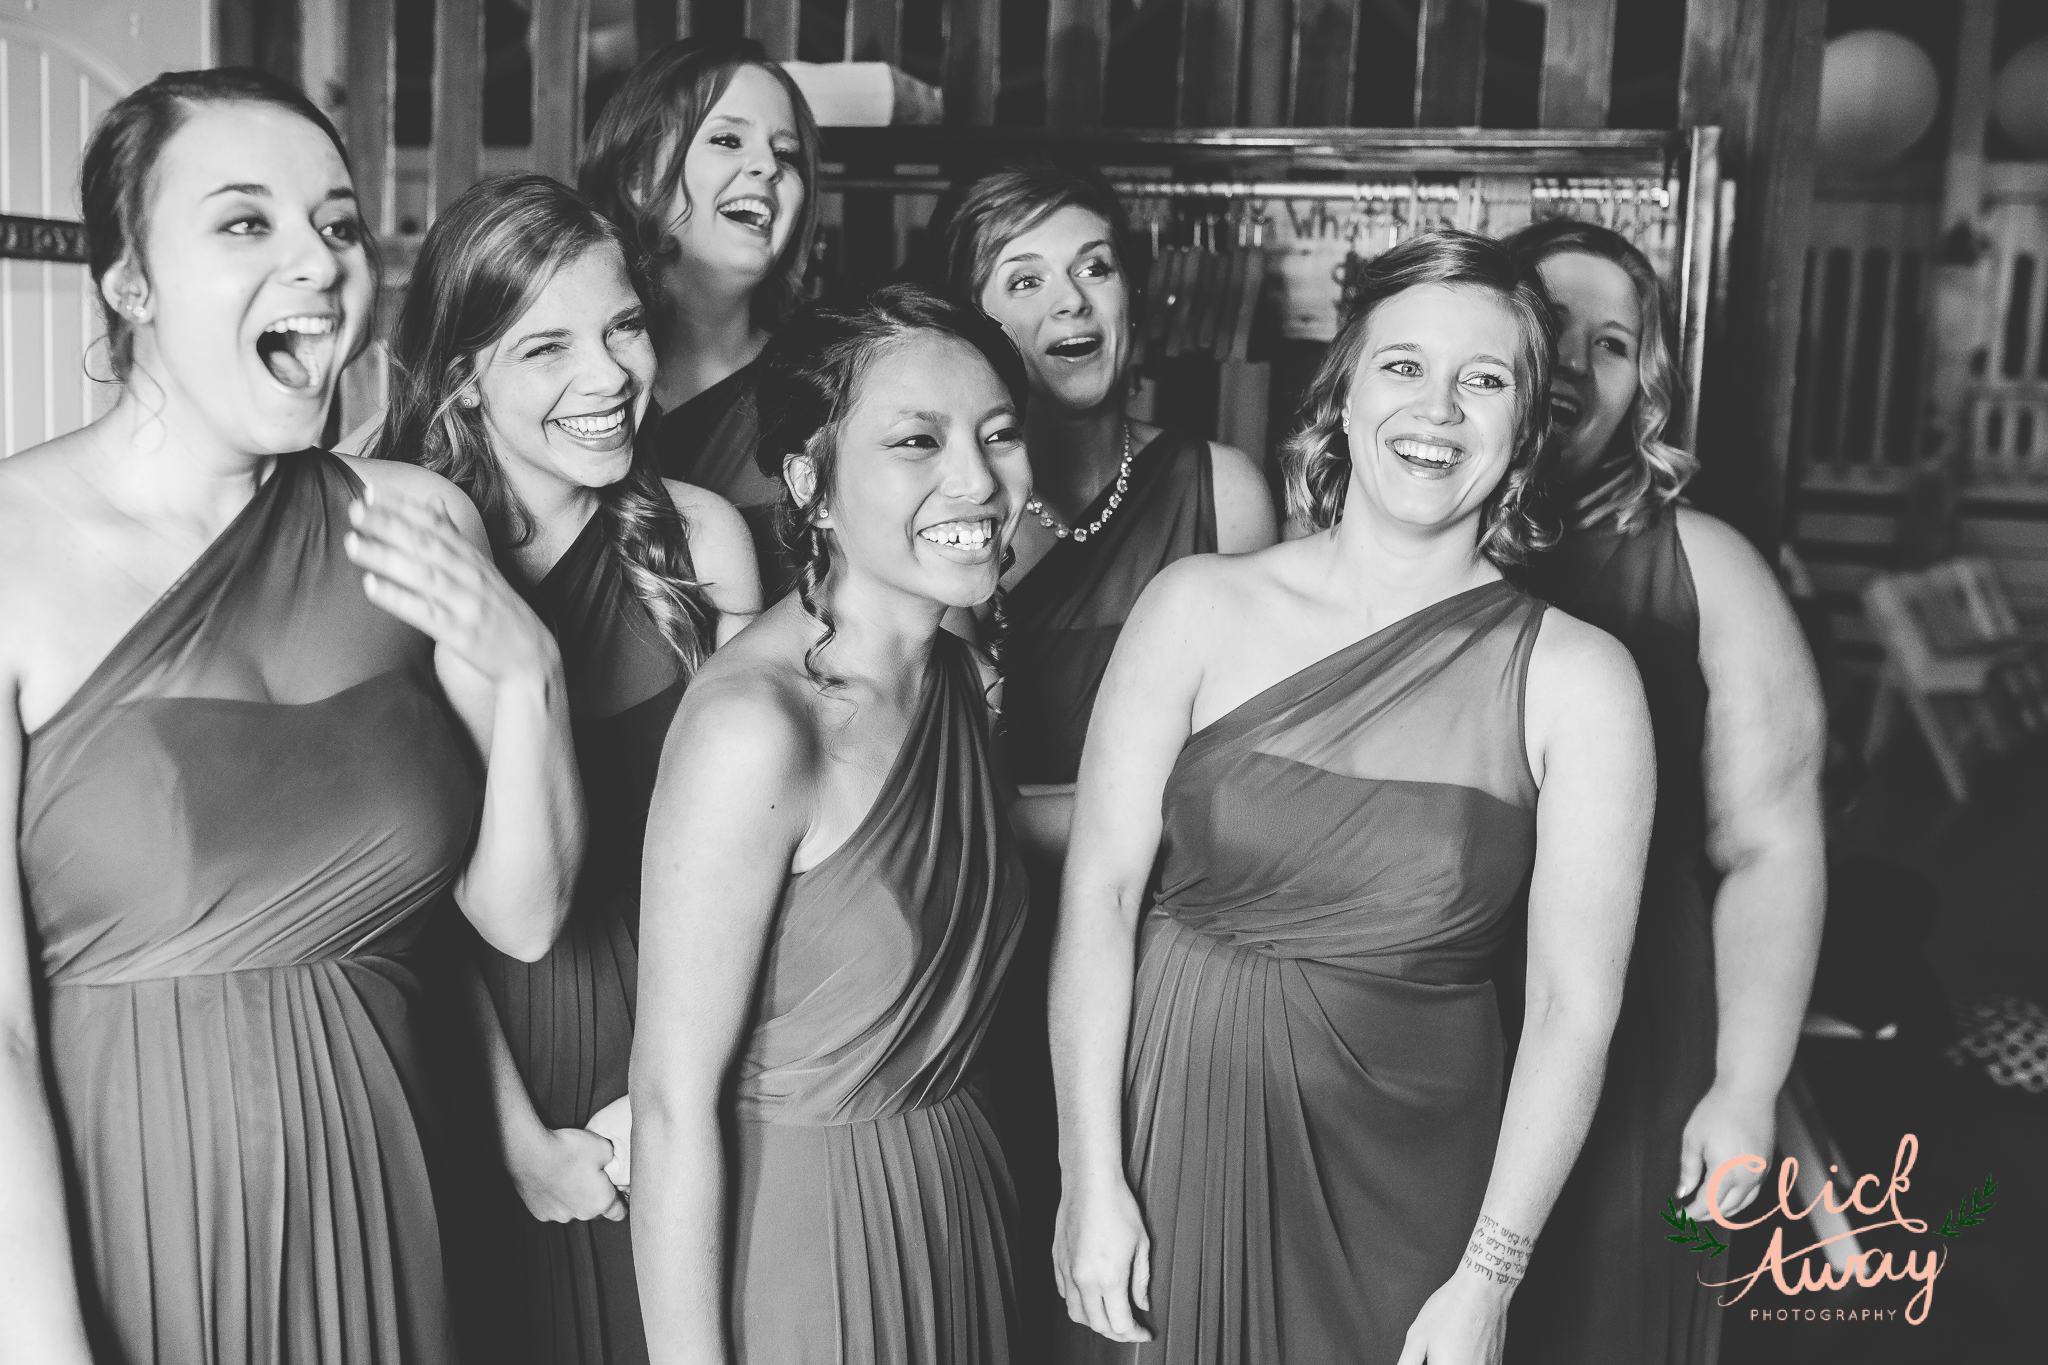 bridesmaids reacting to bride's dress in black and white